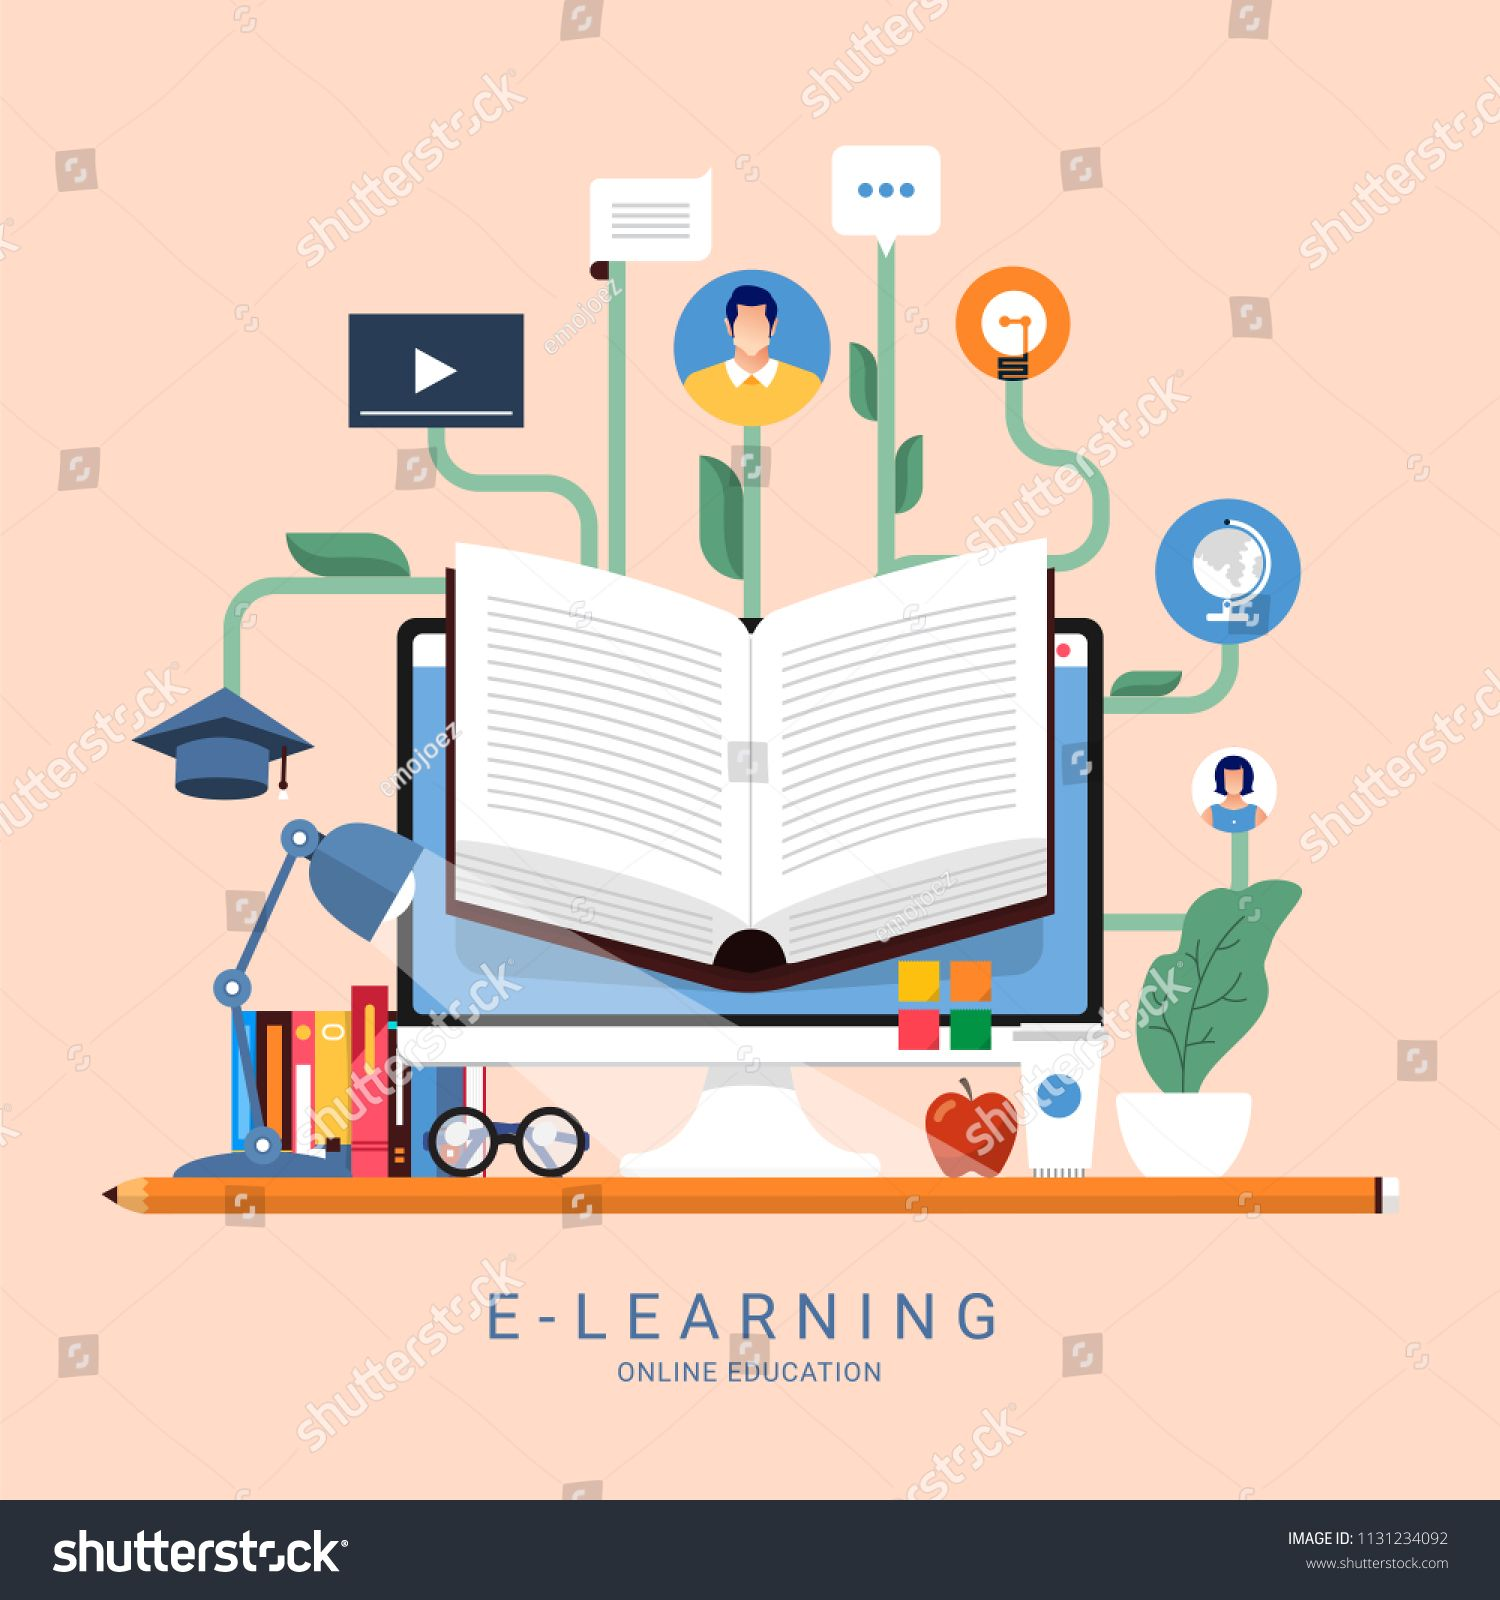 Flat Design Concept People Education Online Knowledge Witgh E Learning Program Vector Illustration E Learning Program Concept Design Print Designs Inspiration